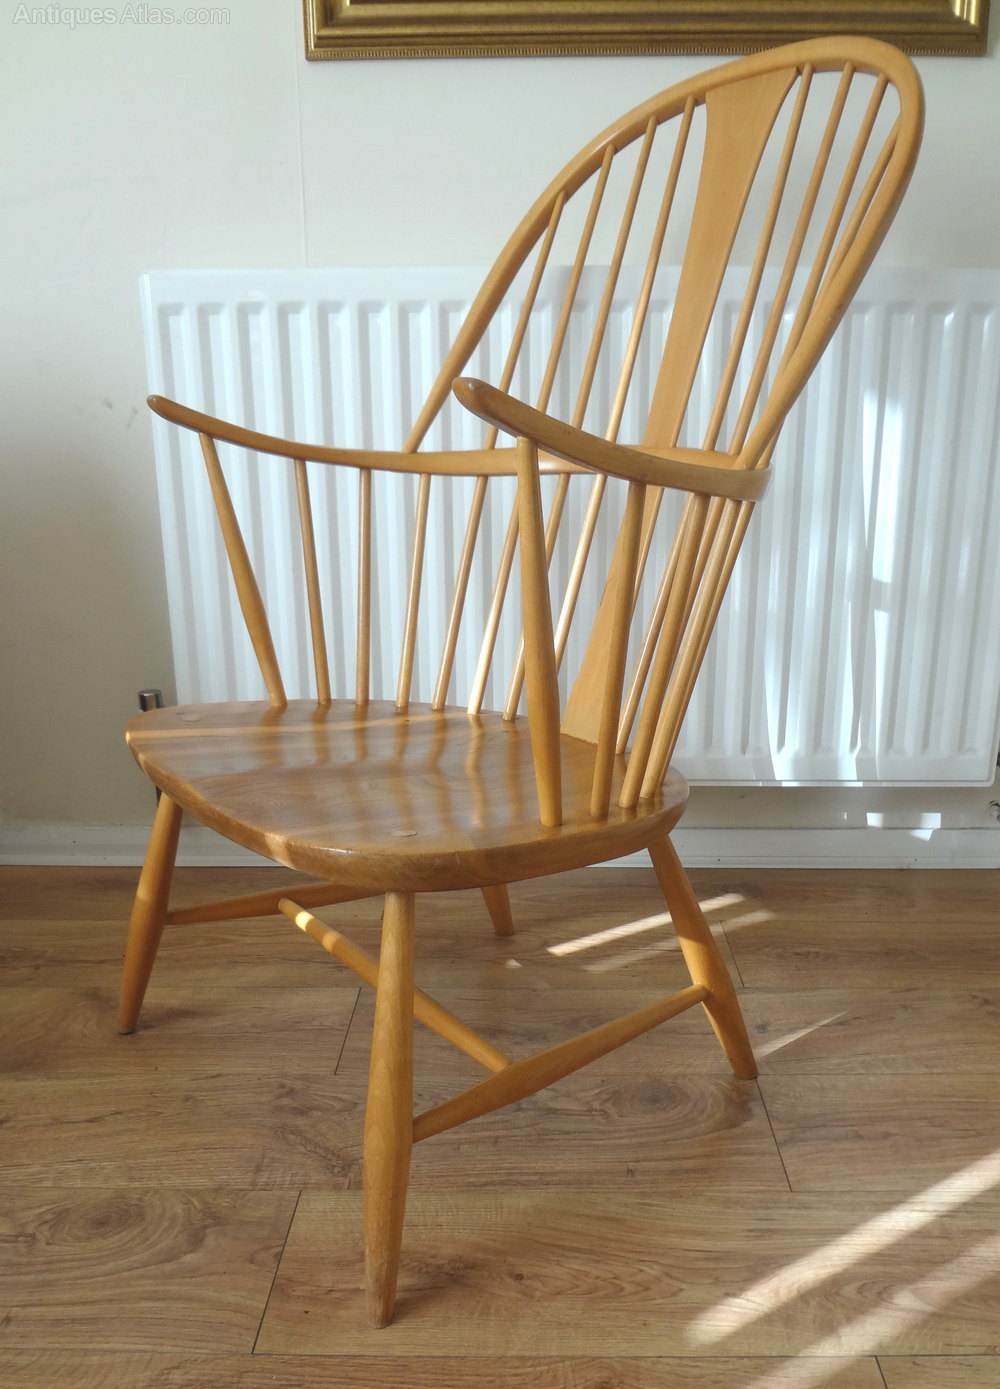 Antiques Atlas - Retro Ercol Chair